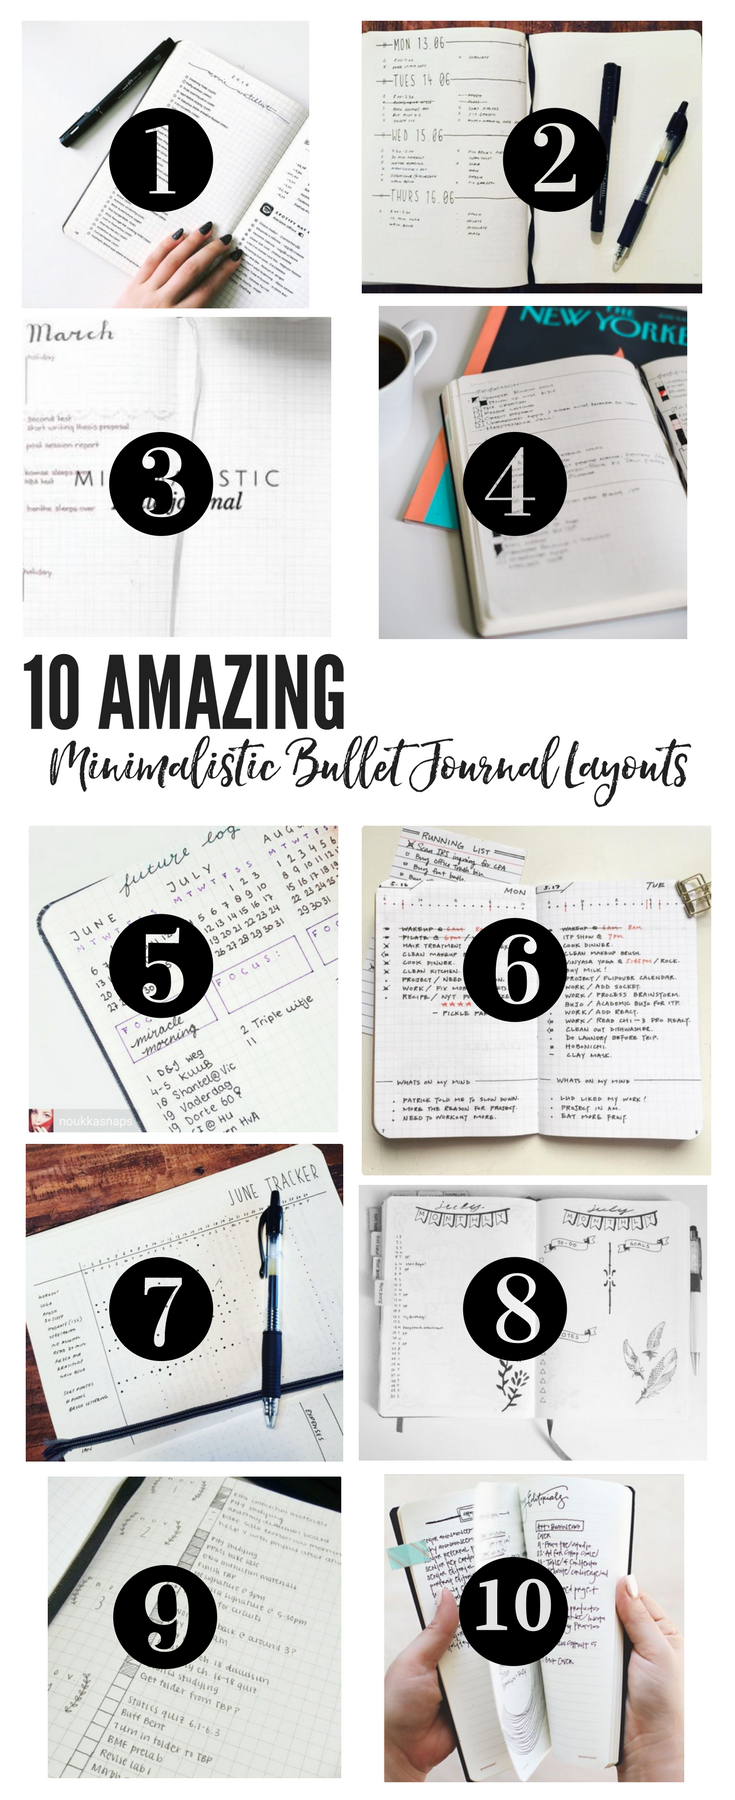 10 Amazing Minimalistic Bullet Journal Layouts | simple minimalistic bullet journal | minimalistic bullet journal ideas | minimalistic bullet journal weekly planner | minimalistic bullet journal posts | minimalistic bullet journal monthly | minimalistic planner | minimalistic planner ideas | minimalistic planner simple | simple bullet journal | simple bullet journal ideas